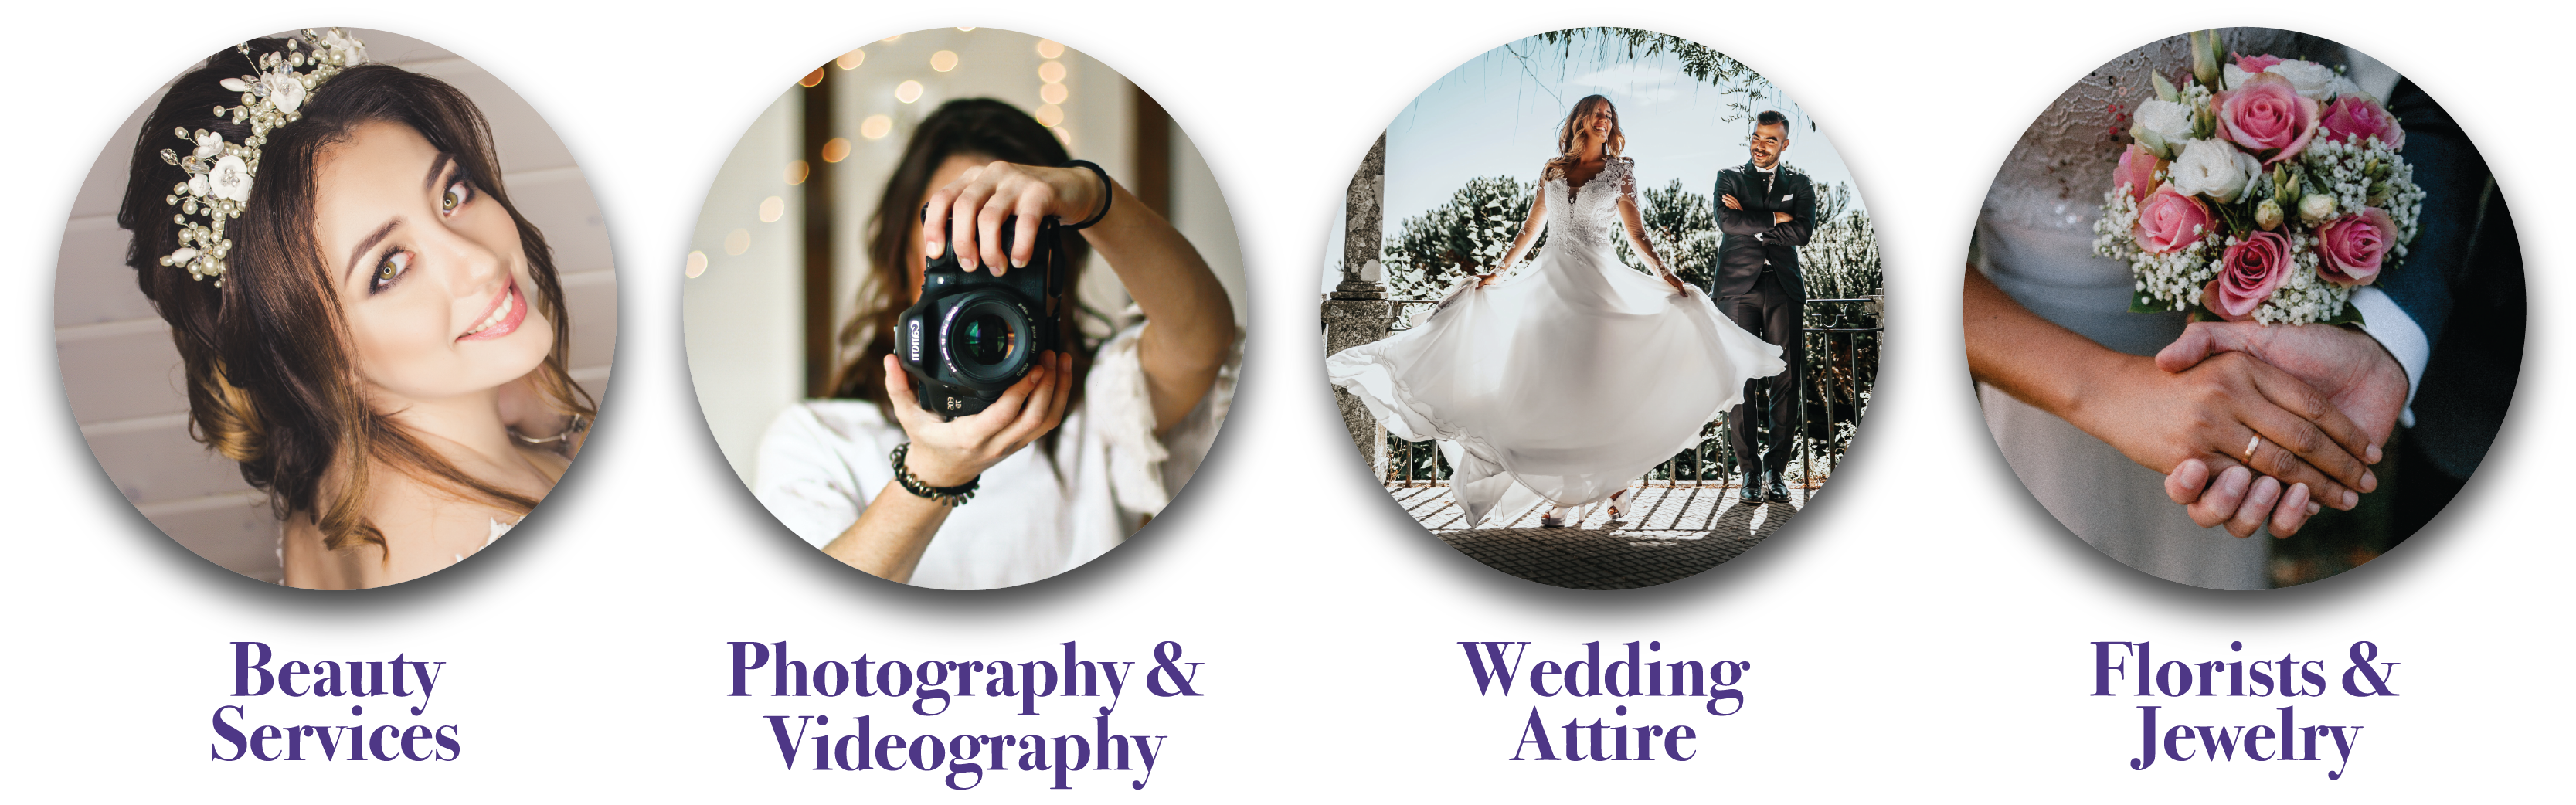 Dream Wedding Expo Activities